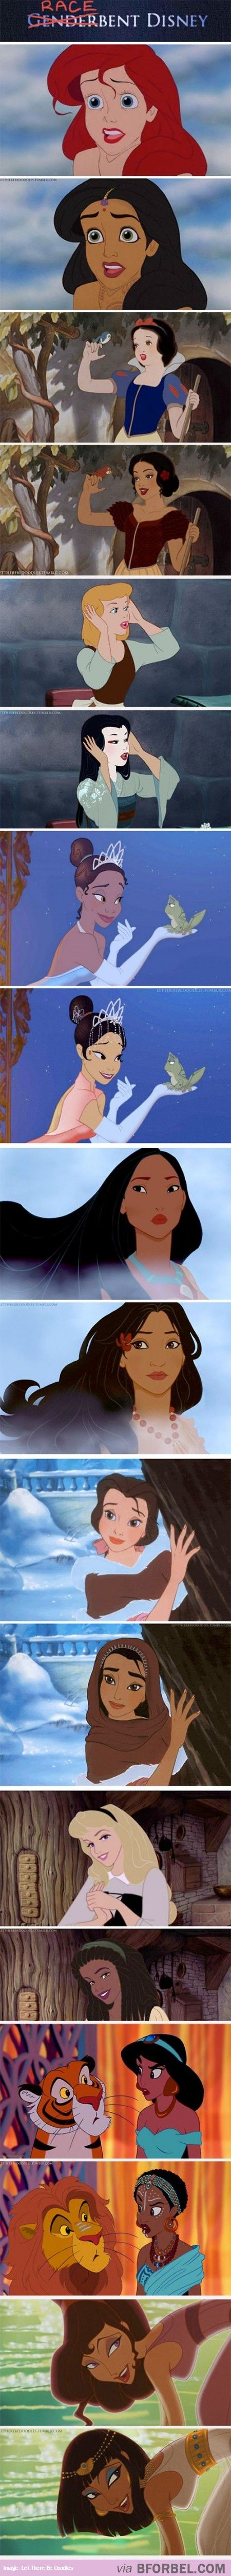 9 Disney Princesses Now Of Different Races… Very interesting. And gorgeous!